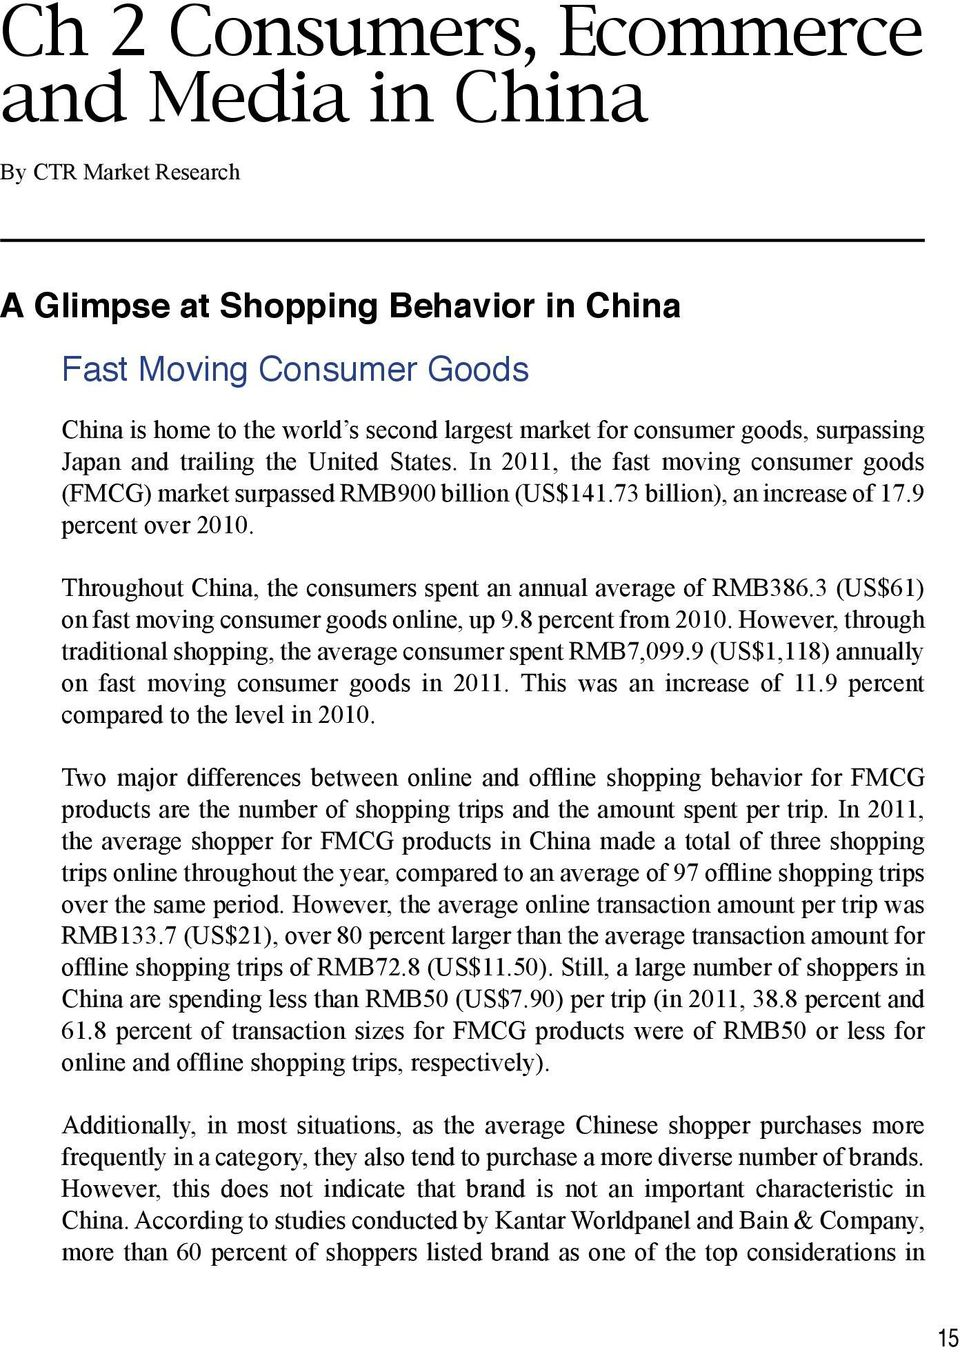 Throughout China, the consumers spent an annual average of RMB386.3 (US$61) on fast moving consumer goods online, up 9.8 percent from 2010.